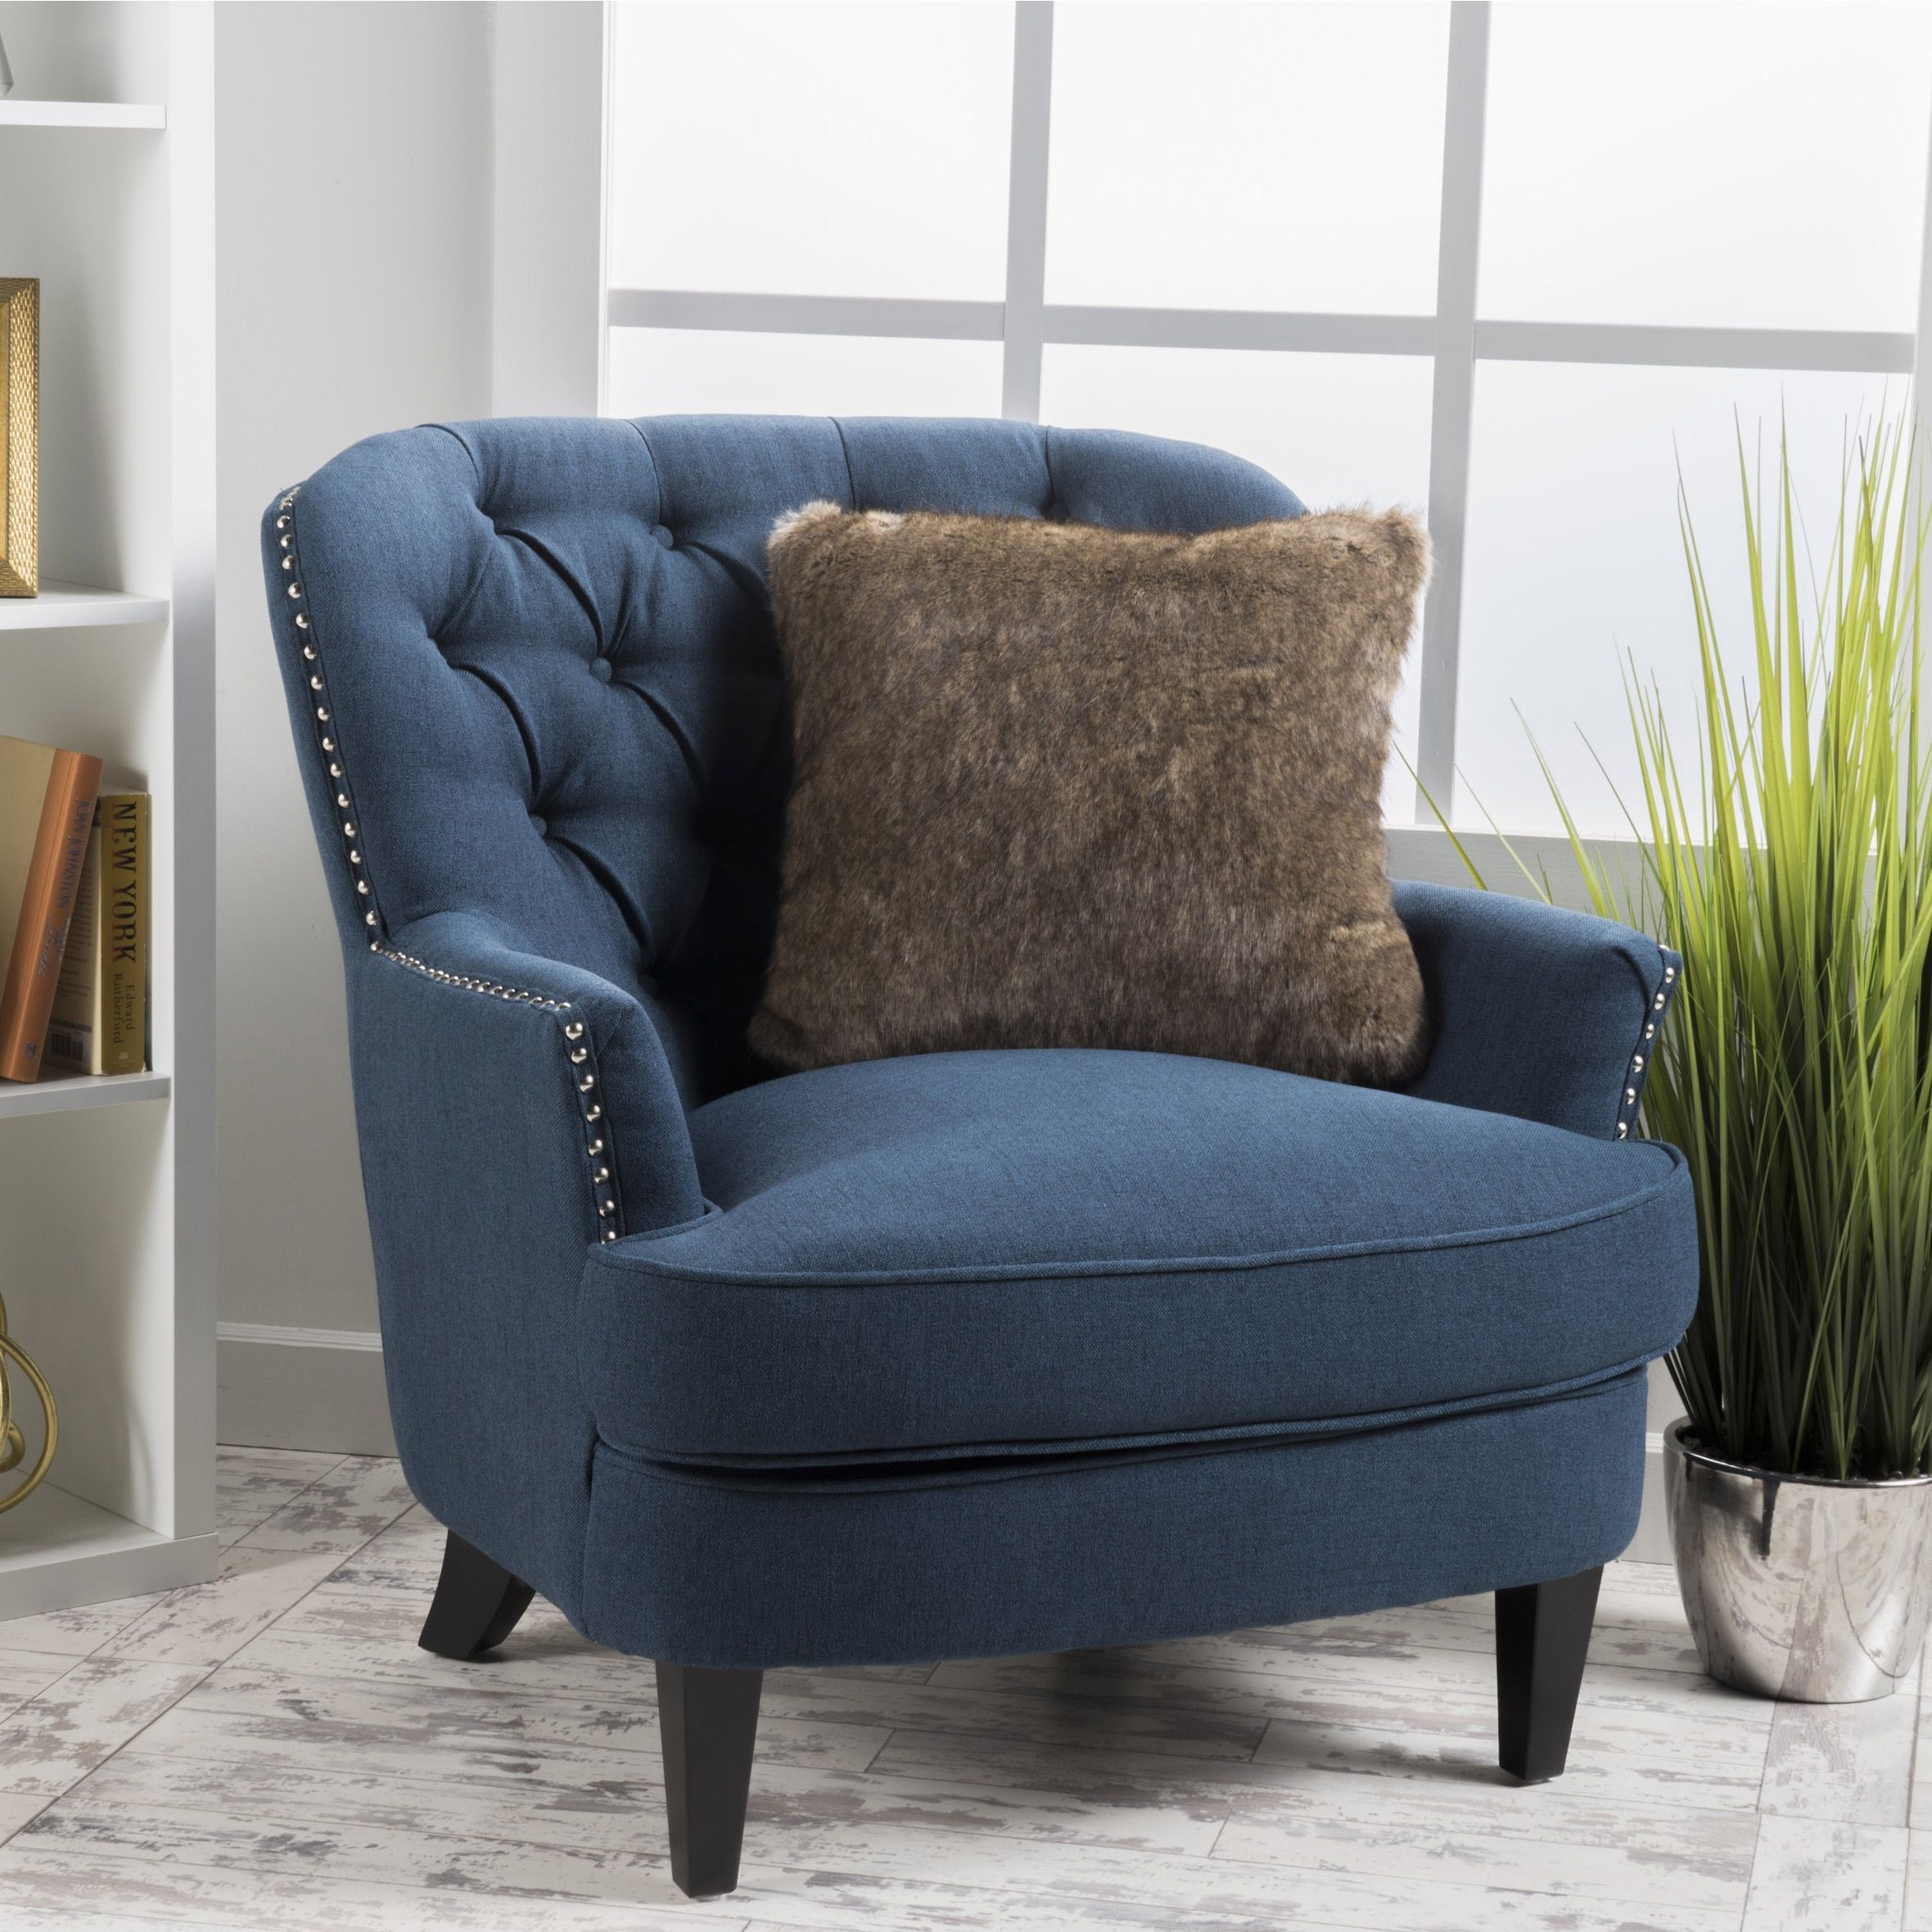 Beau Tafton Tufted Oversized Fabric Club Chair By Christopher Knight Home (Tafton  Tufted Dark Blue Fabric